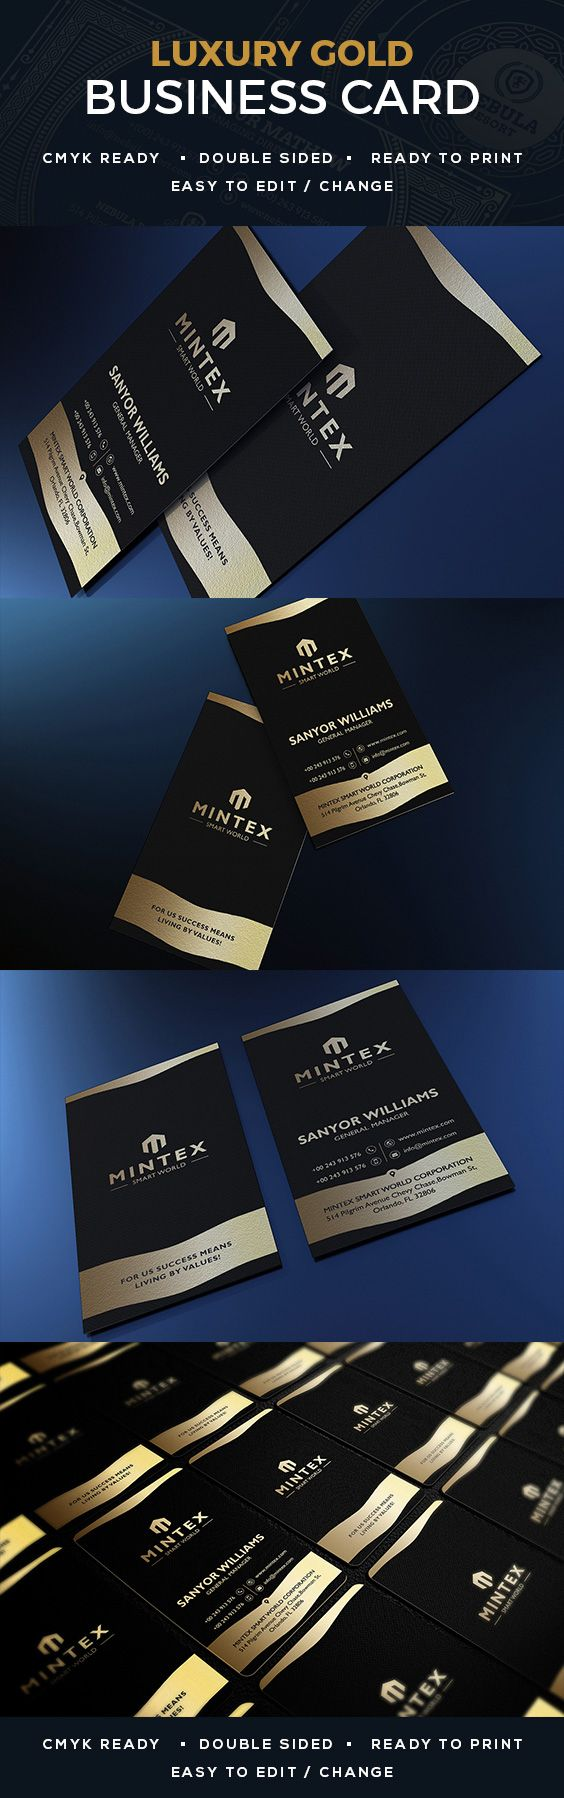 78 best creative business cards images on pinterest corporate luxury gold business card magicingreecefo Choice Image